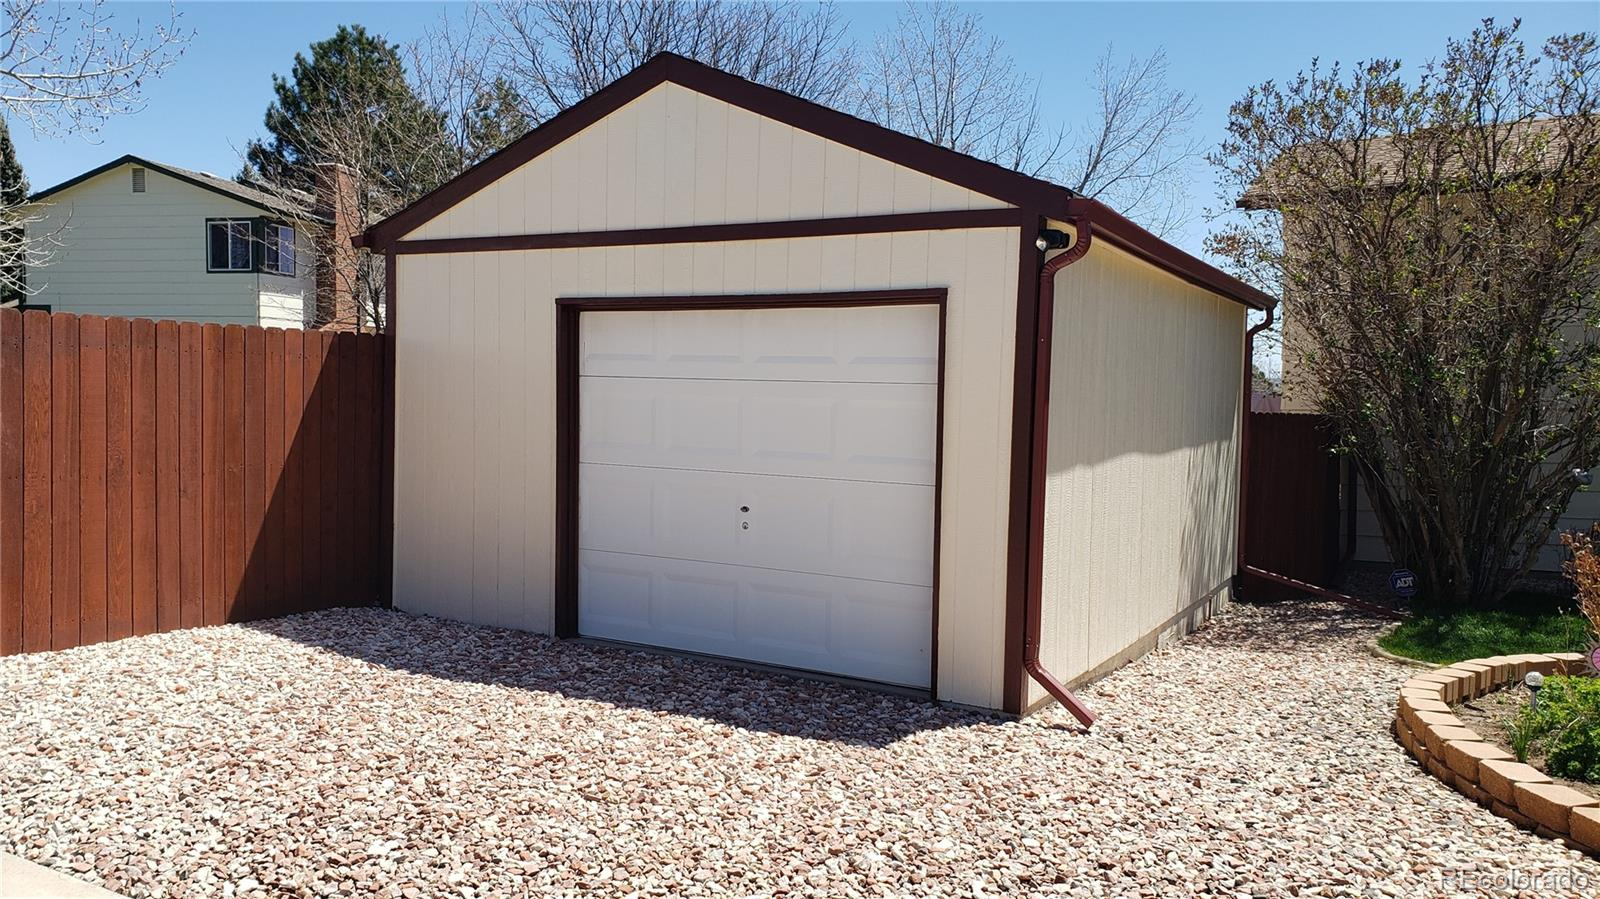 MLS# 2811379 - 3 - 9645 W David Avenue, Littleton, CO 80128